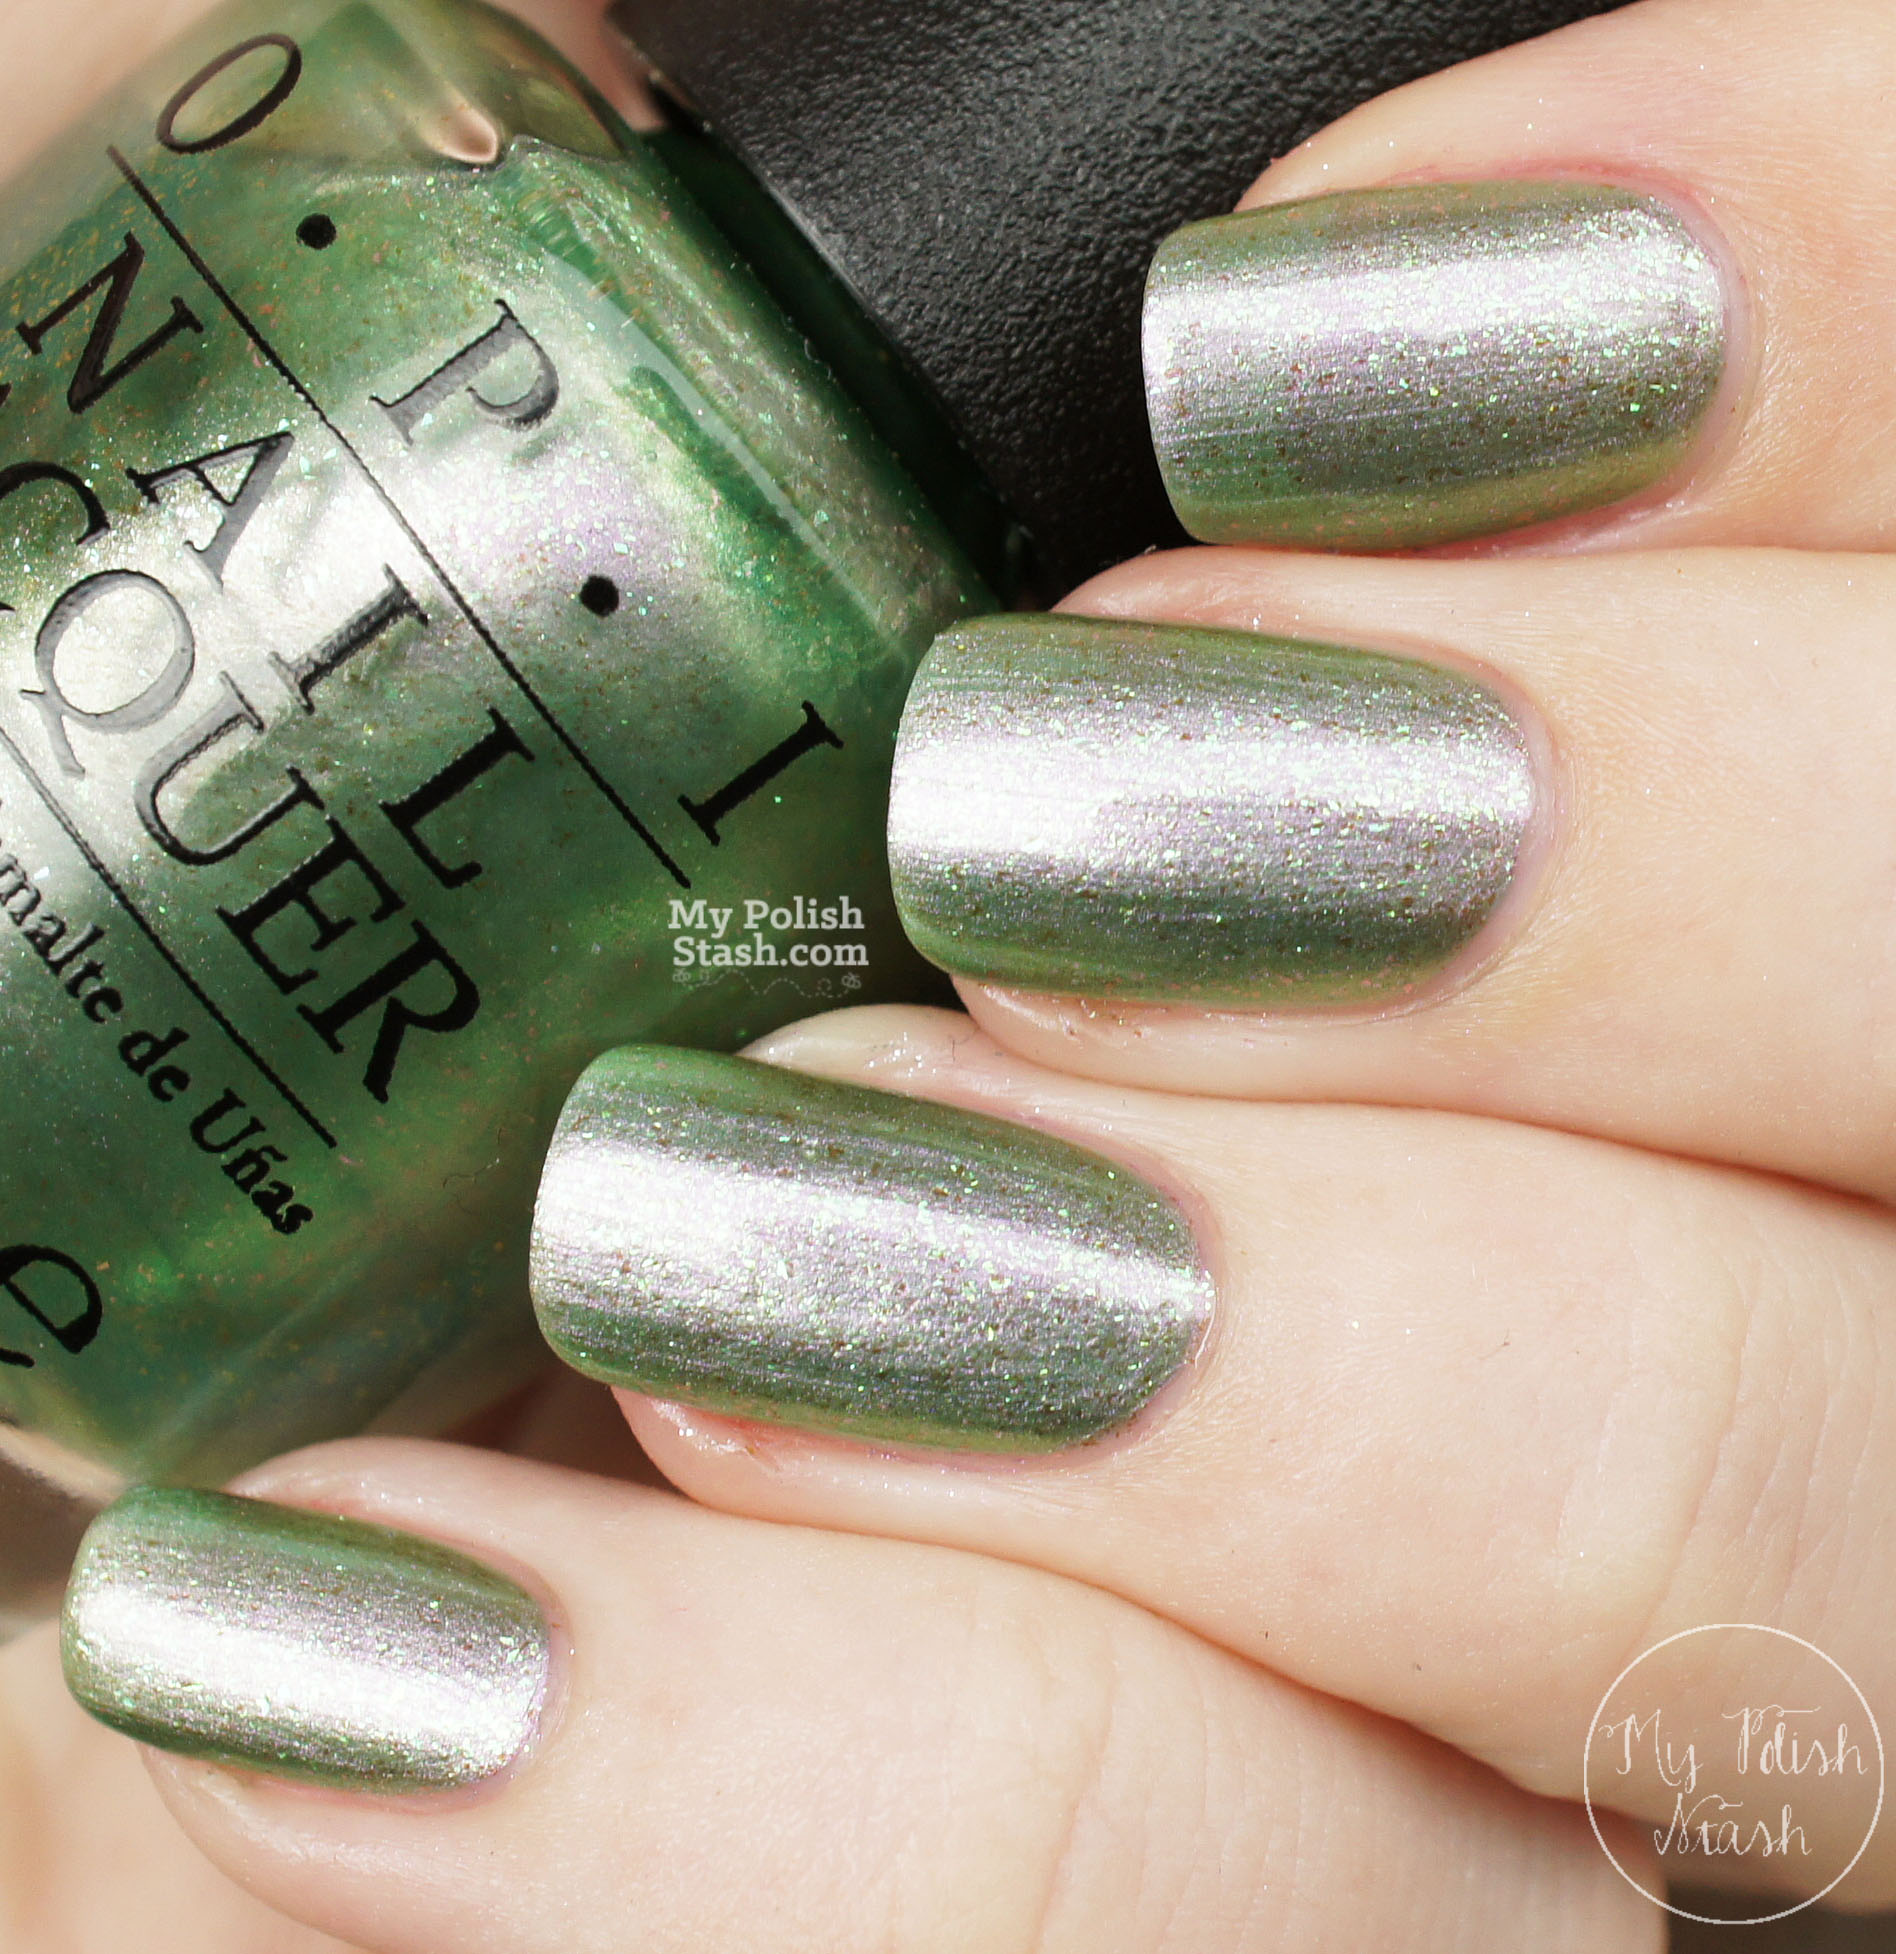 OPI-visions-of-georgia-green-3